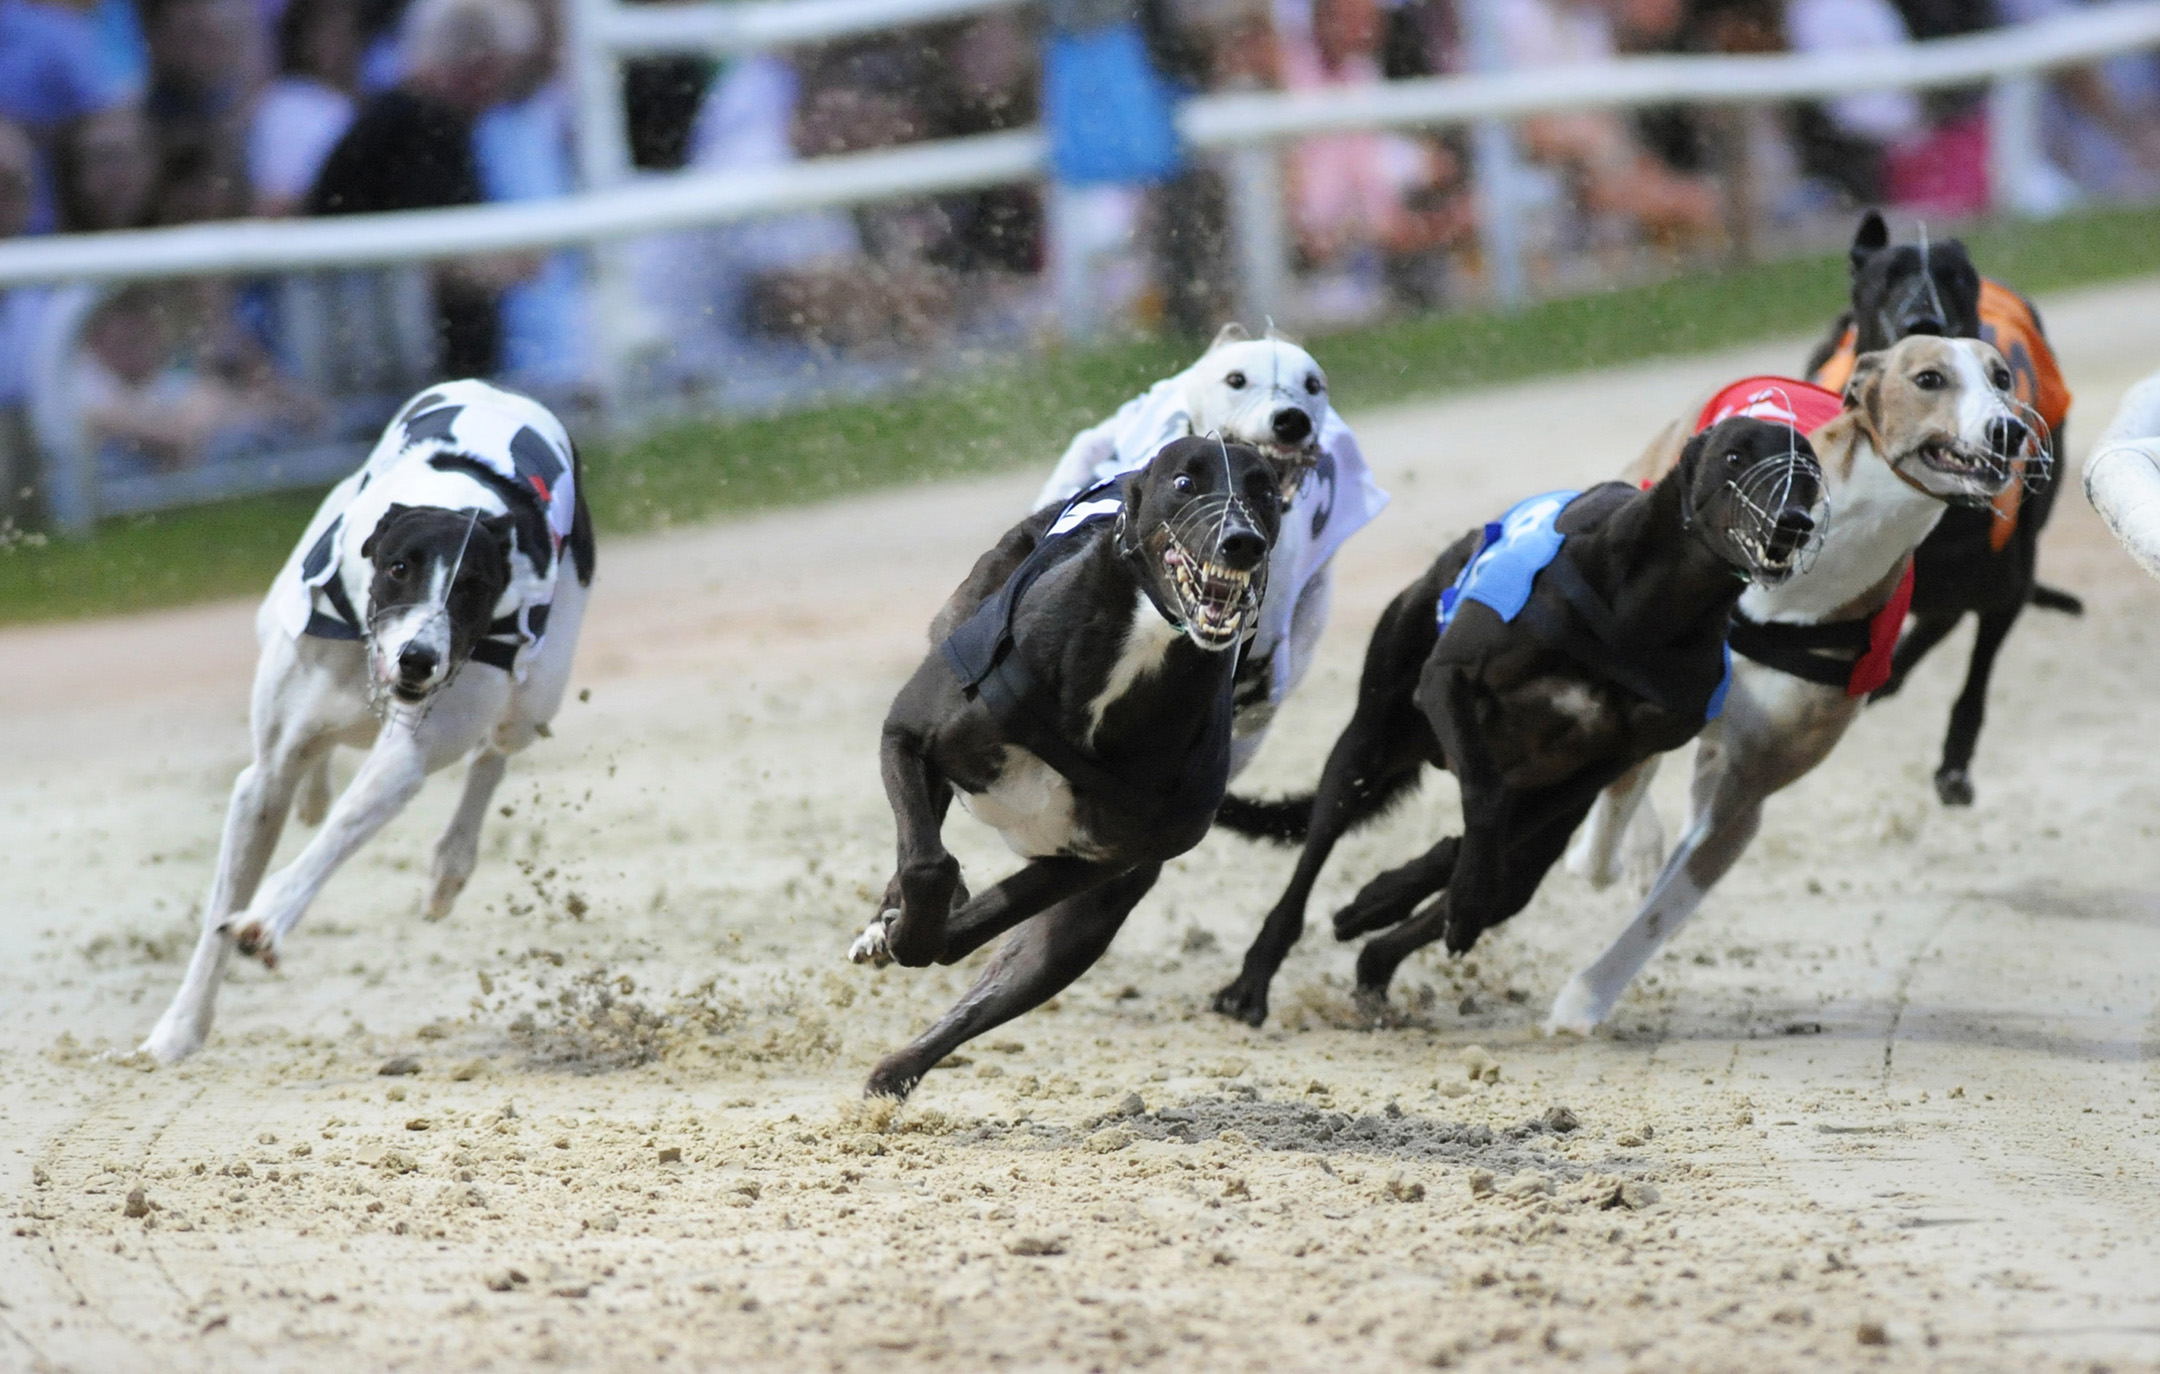 irish greyhound racing results